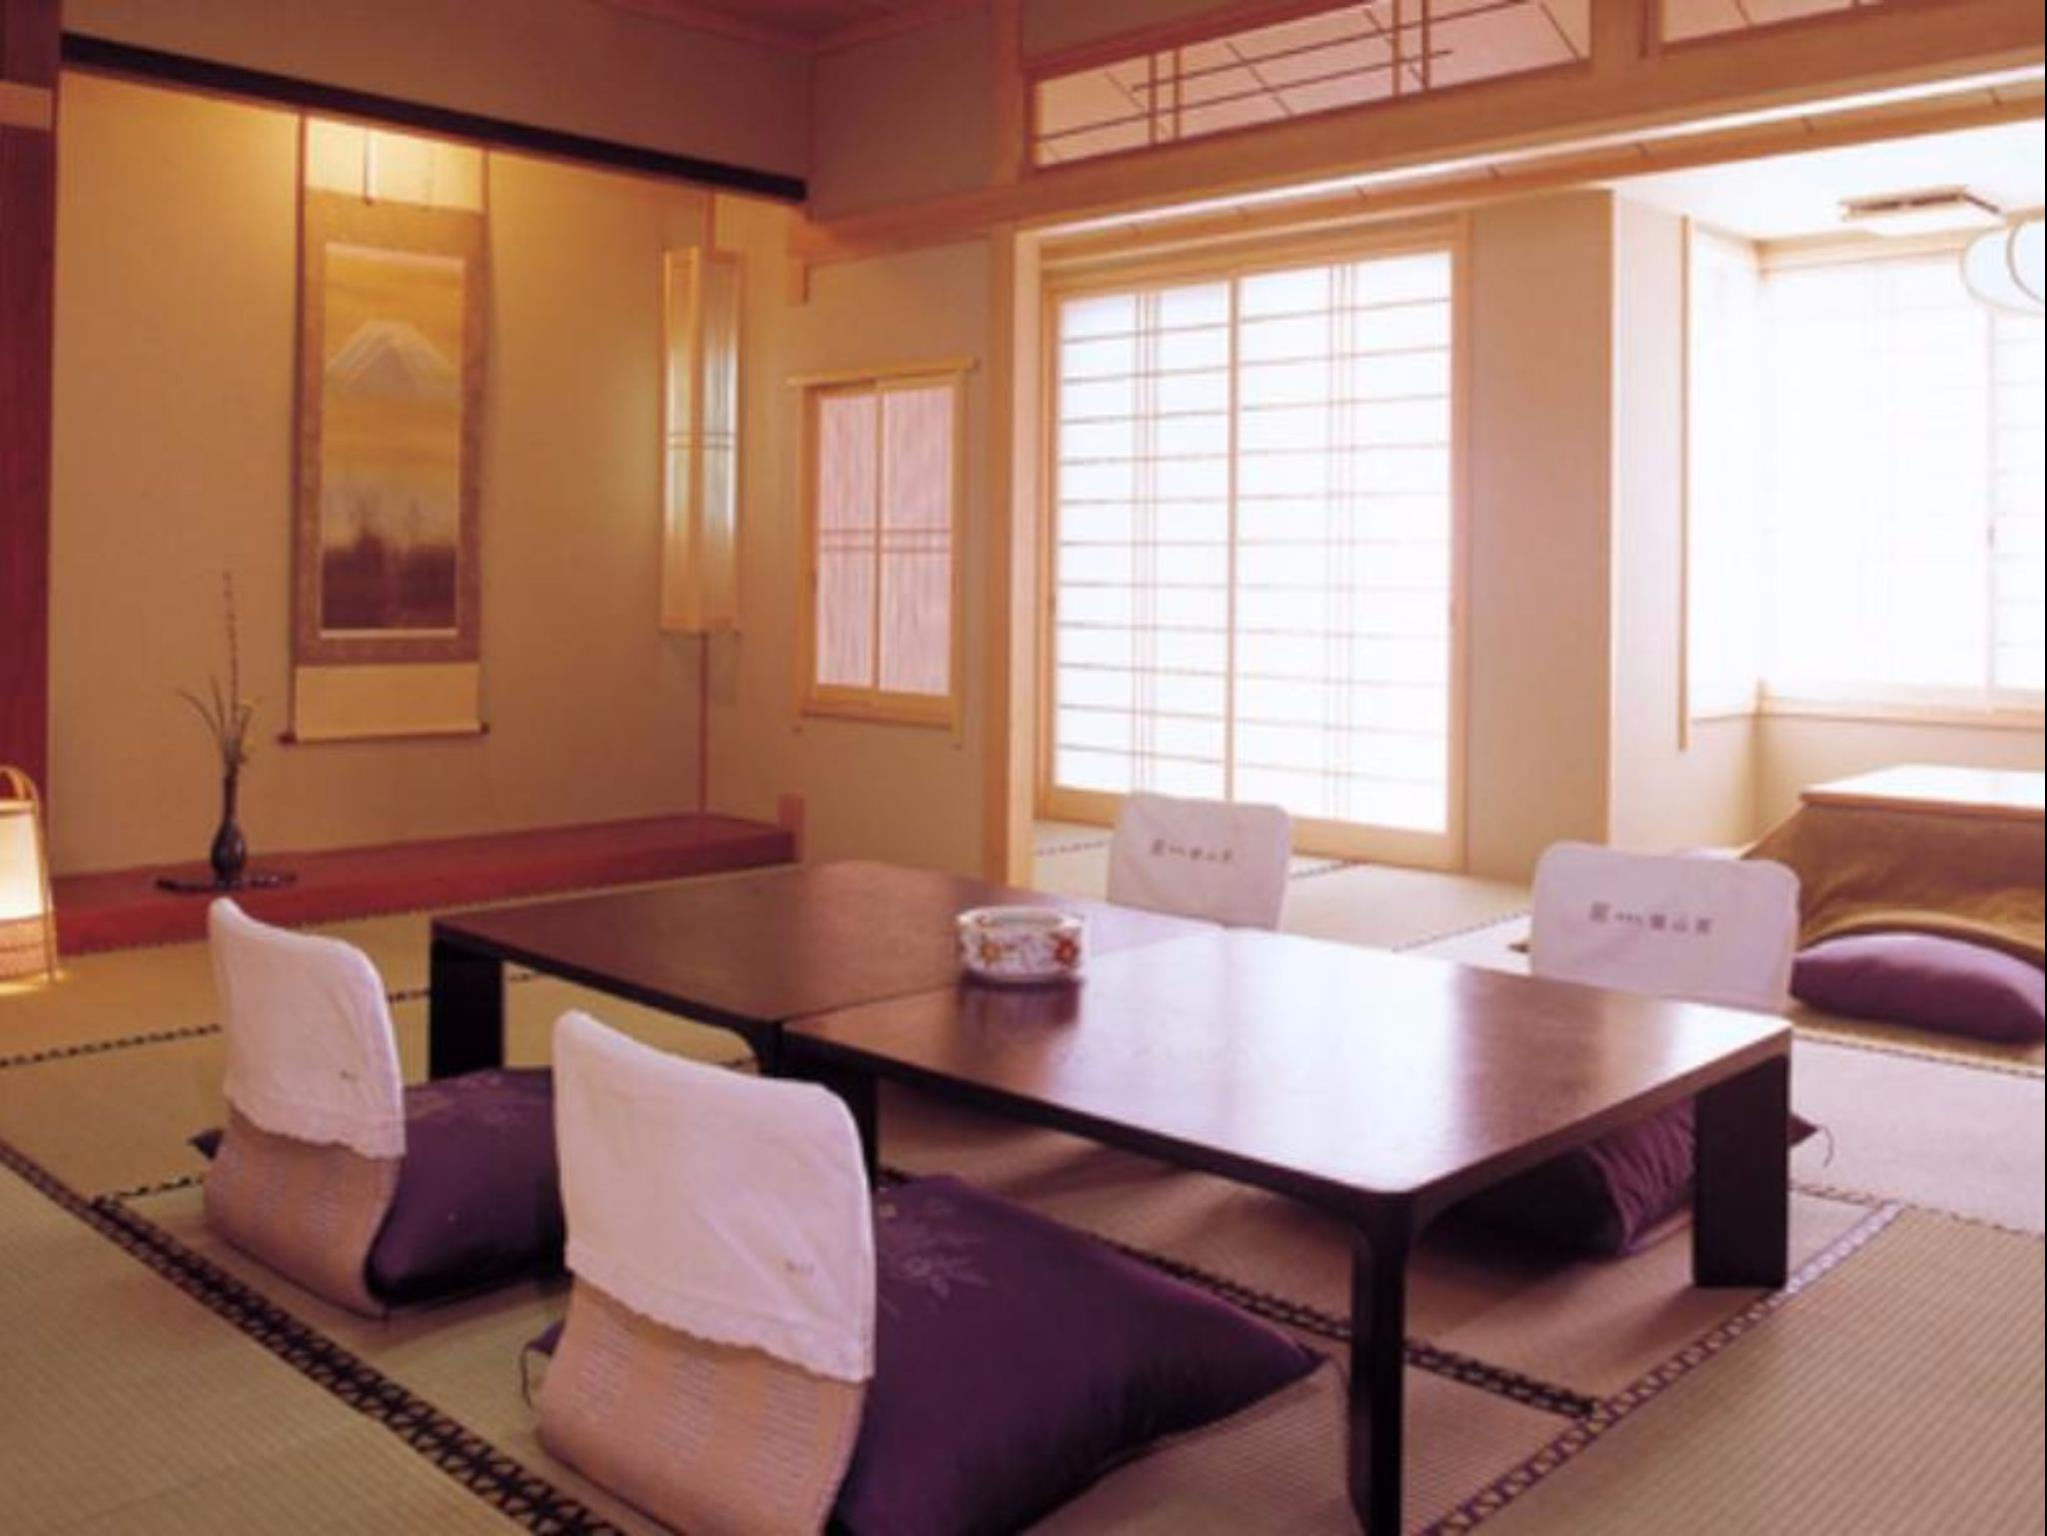 Seseragi-tei Building 3 Mount Fuji View Japanese Style Room - Smoking